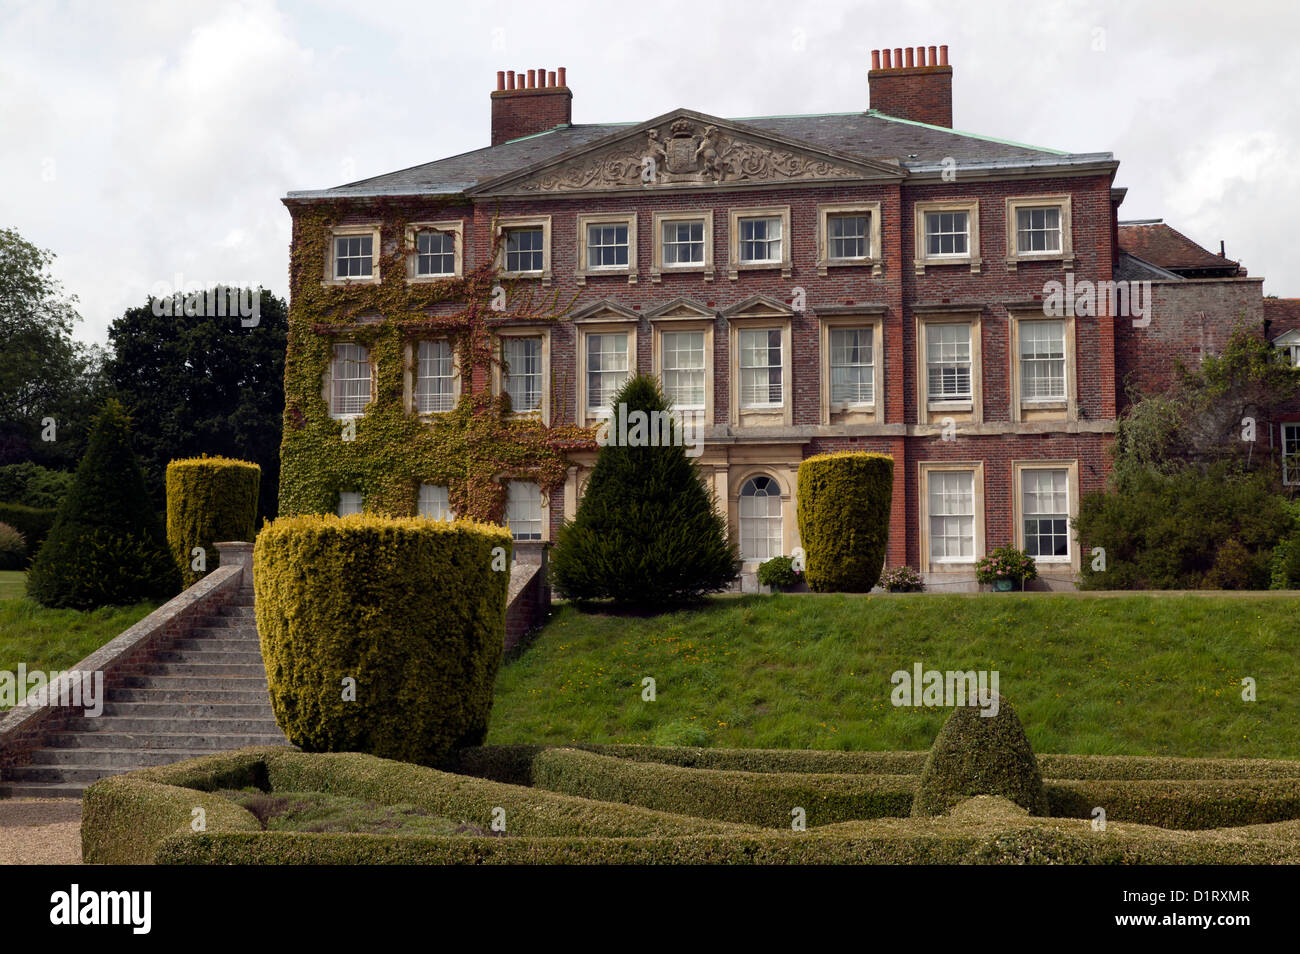 View of  Goodnestone House, built by Brook Bridges in 1704. Presently owned by  Margaret, The Lady Fitzwalter. - Stock Image